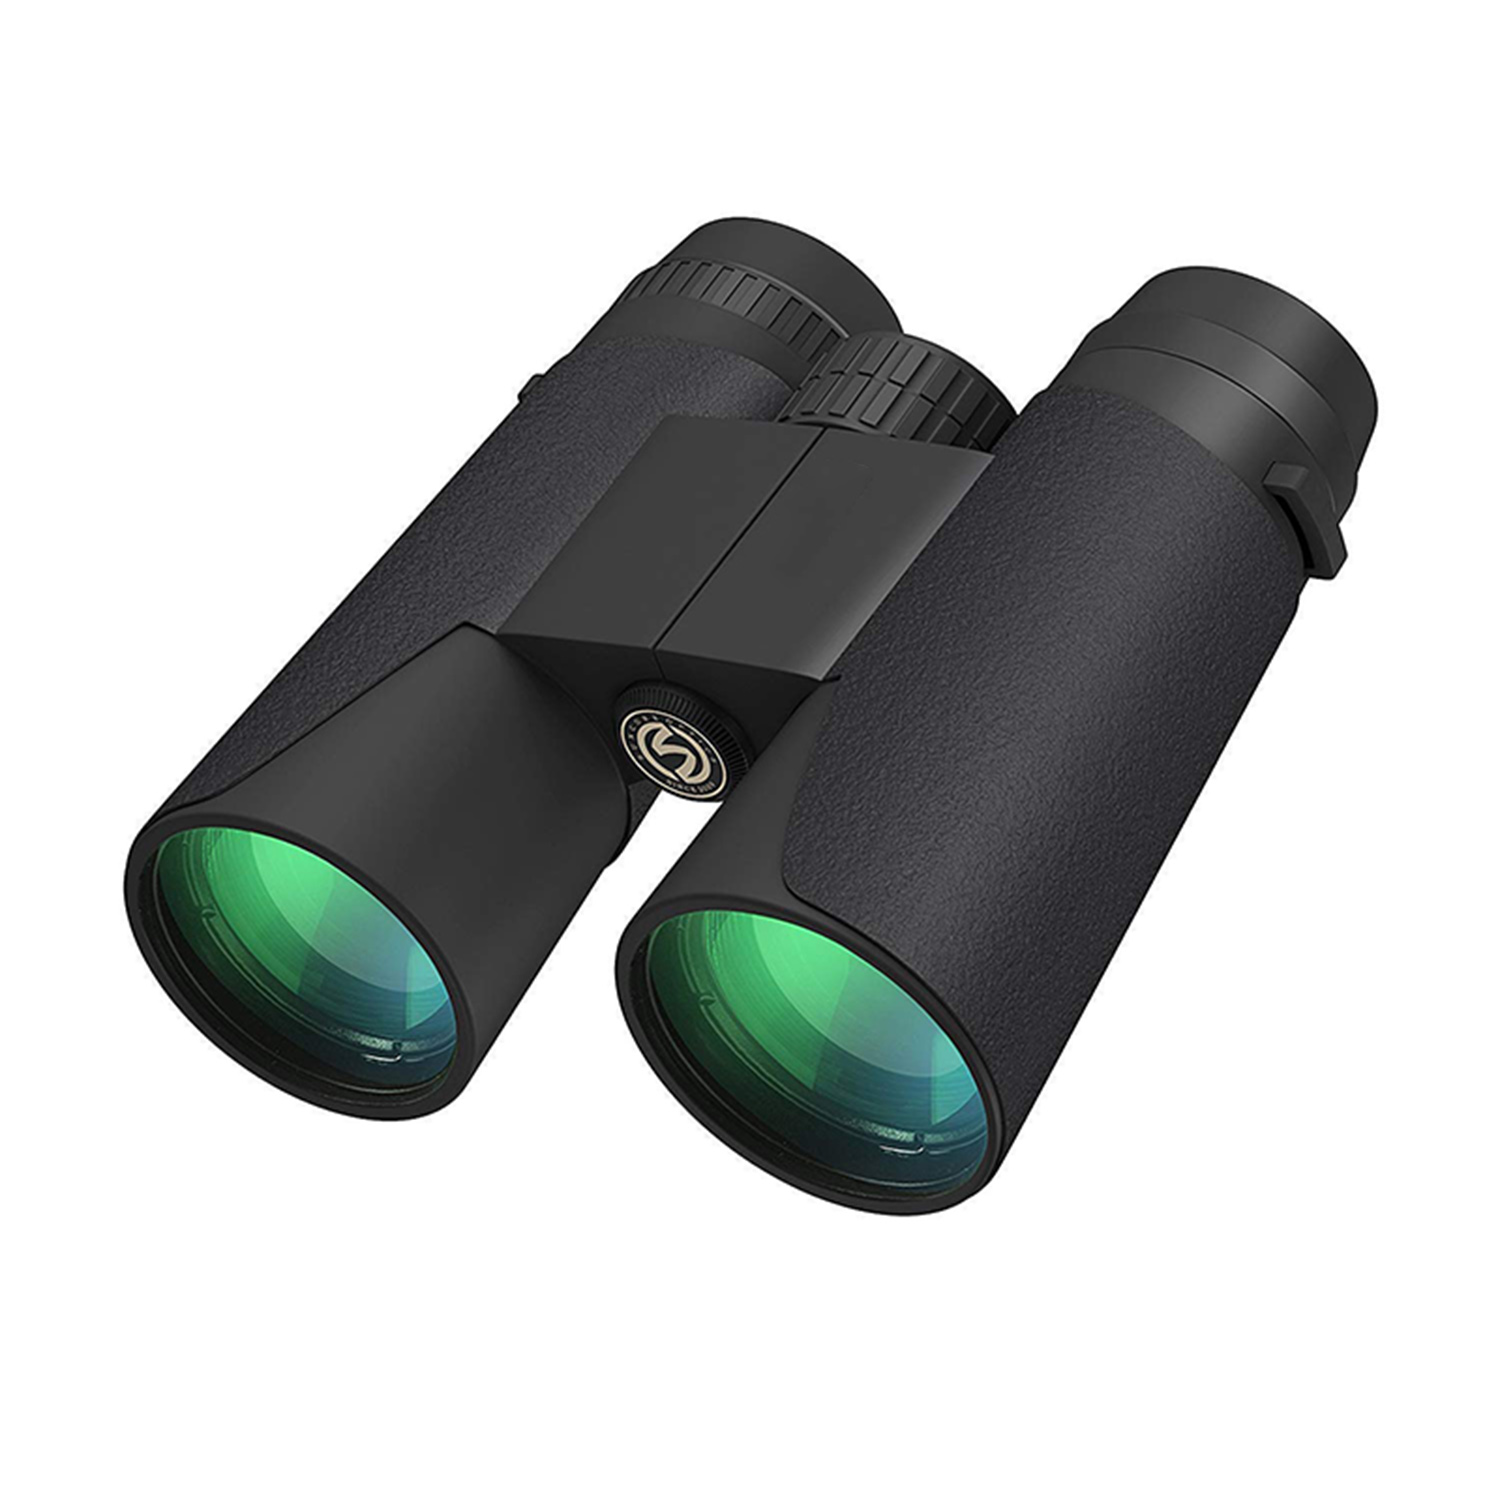 High Power Binoculars 12x42 Bak4 Prism For Adults Fogproof Waterproof Great For Bird Watching Travel Stargazing Hunting Concer image